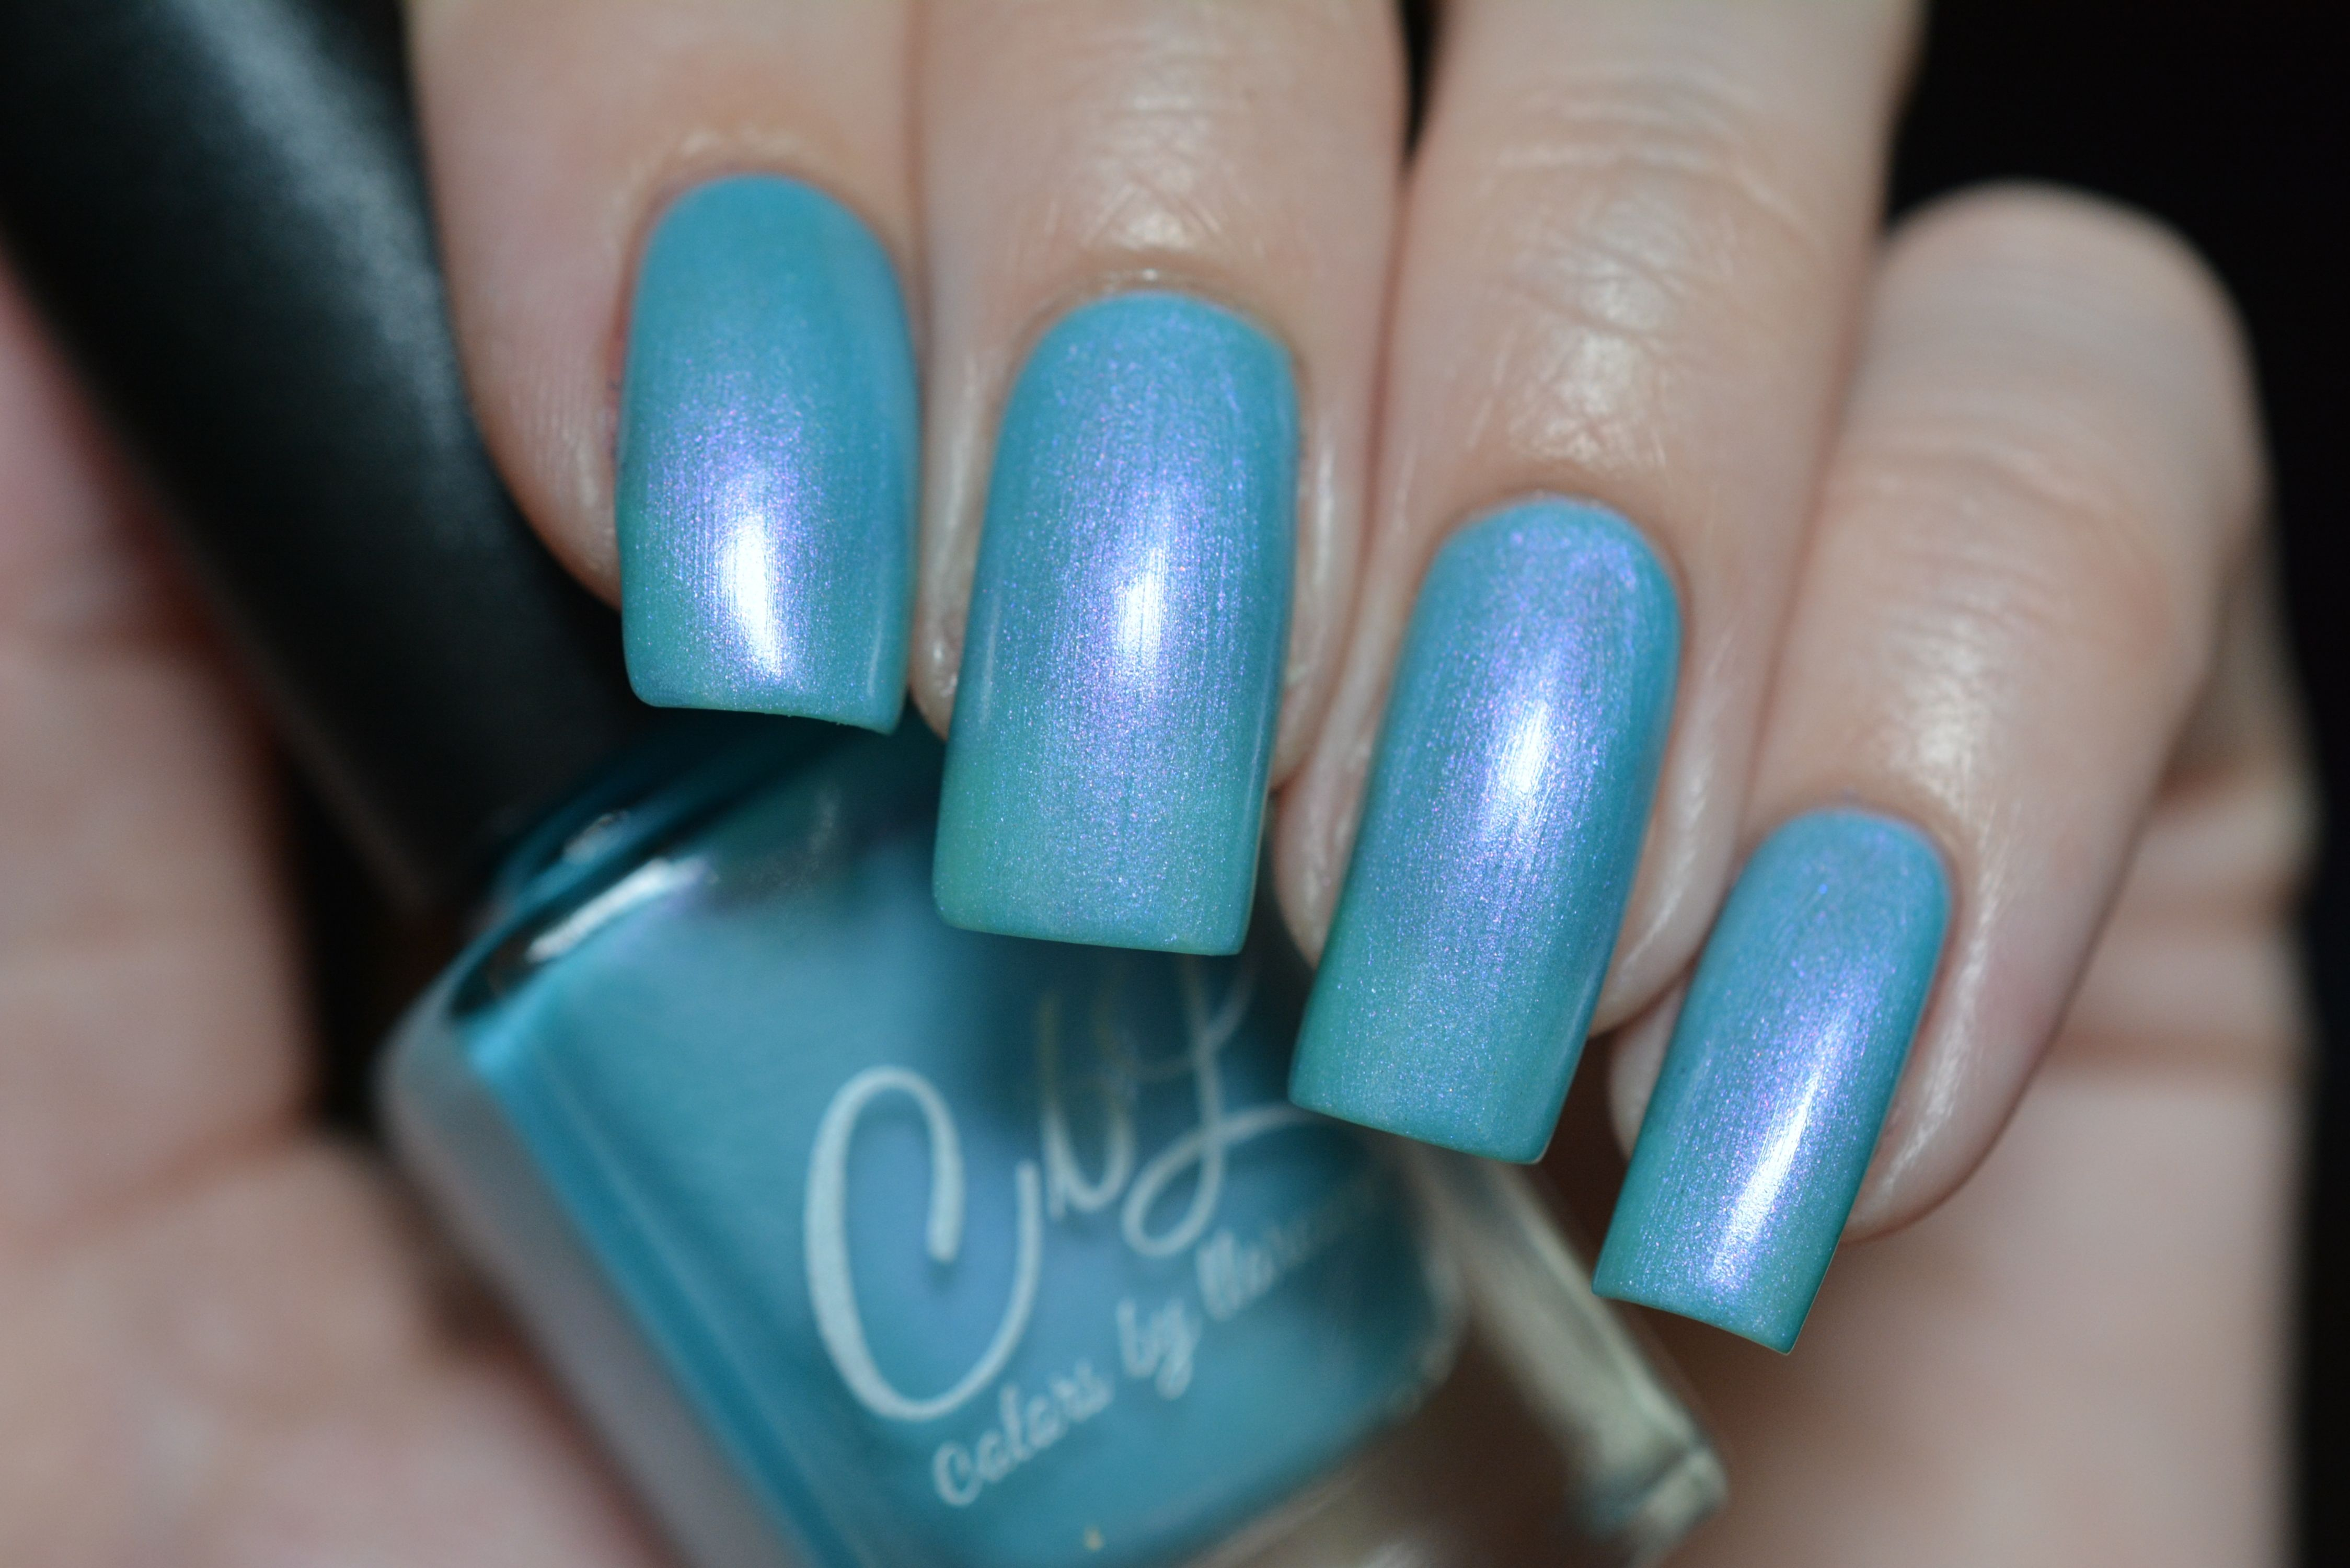 Katarina - The color of this polish is so hard to describe.  It is a creamy light sky blue aqua creme with intense violet shimmer.  This polish glows and is so delicate!  The holographic version of this is Arturo. Swatch by @luba_myfish_nails on Instagram.